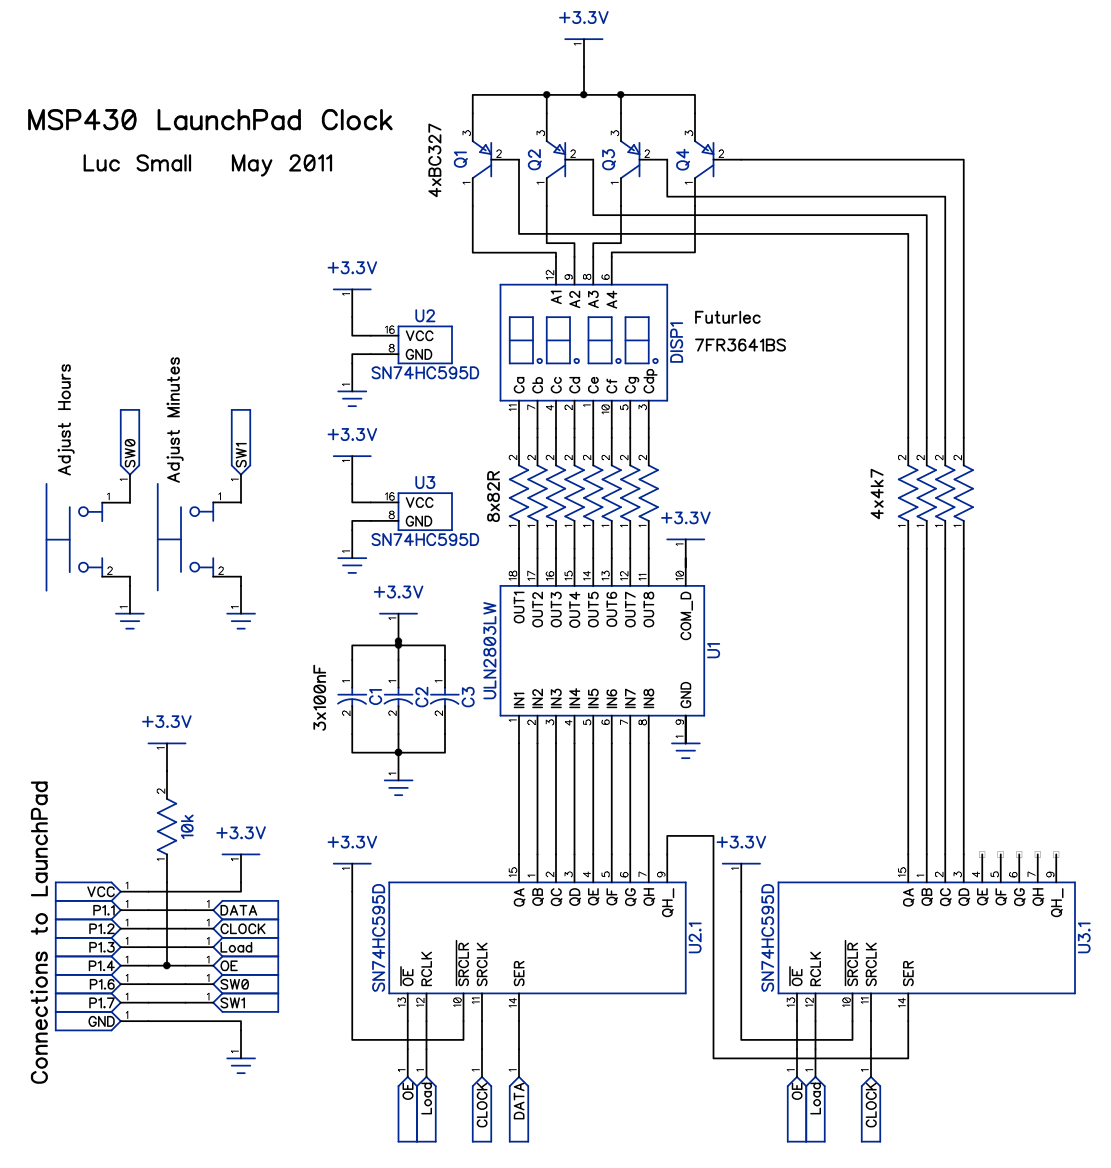 20130507 msp430 launchpad clock circuit msp430 launchpad clock lucsmall com Basic Electrical Wiring Diagrams at crackthecode.co